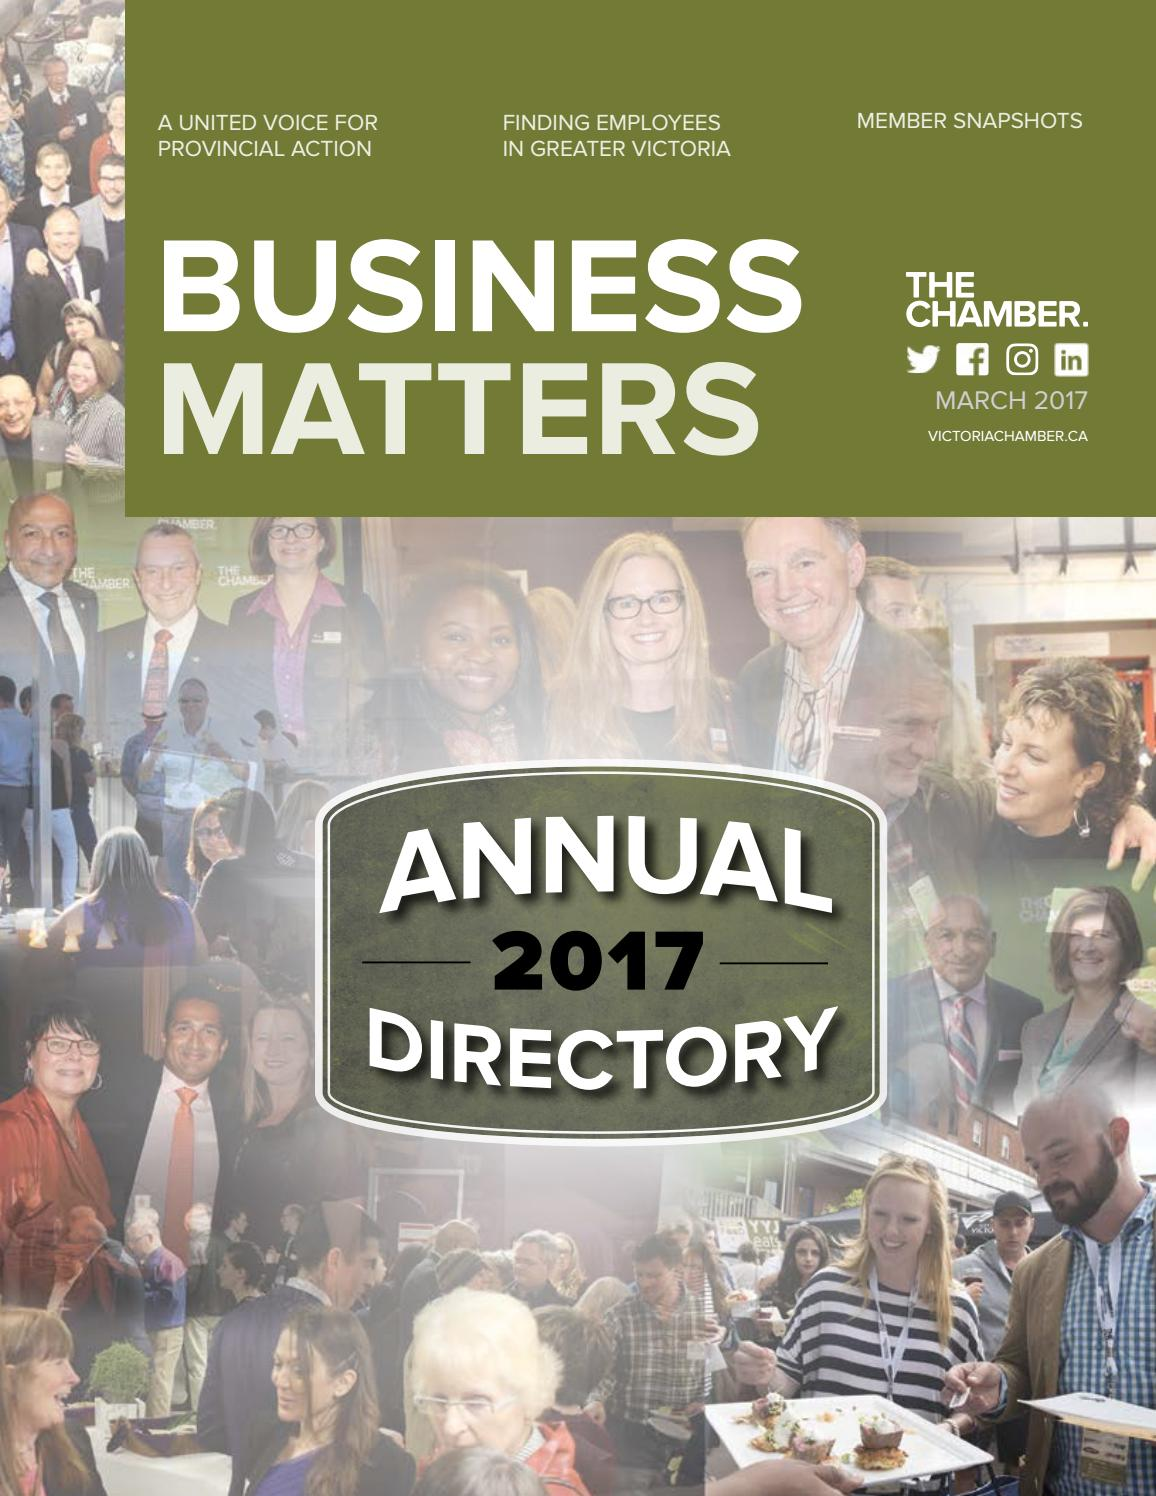 March Business Matters 2017 by Greater Victoria Chamber of Commerce - issuu 828157aae21